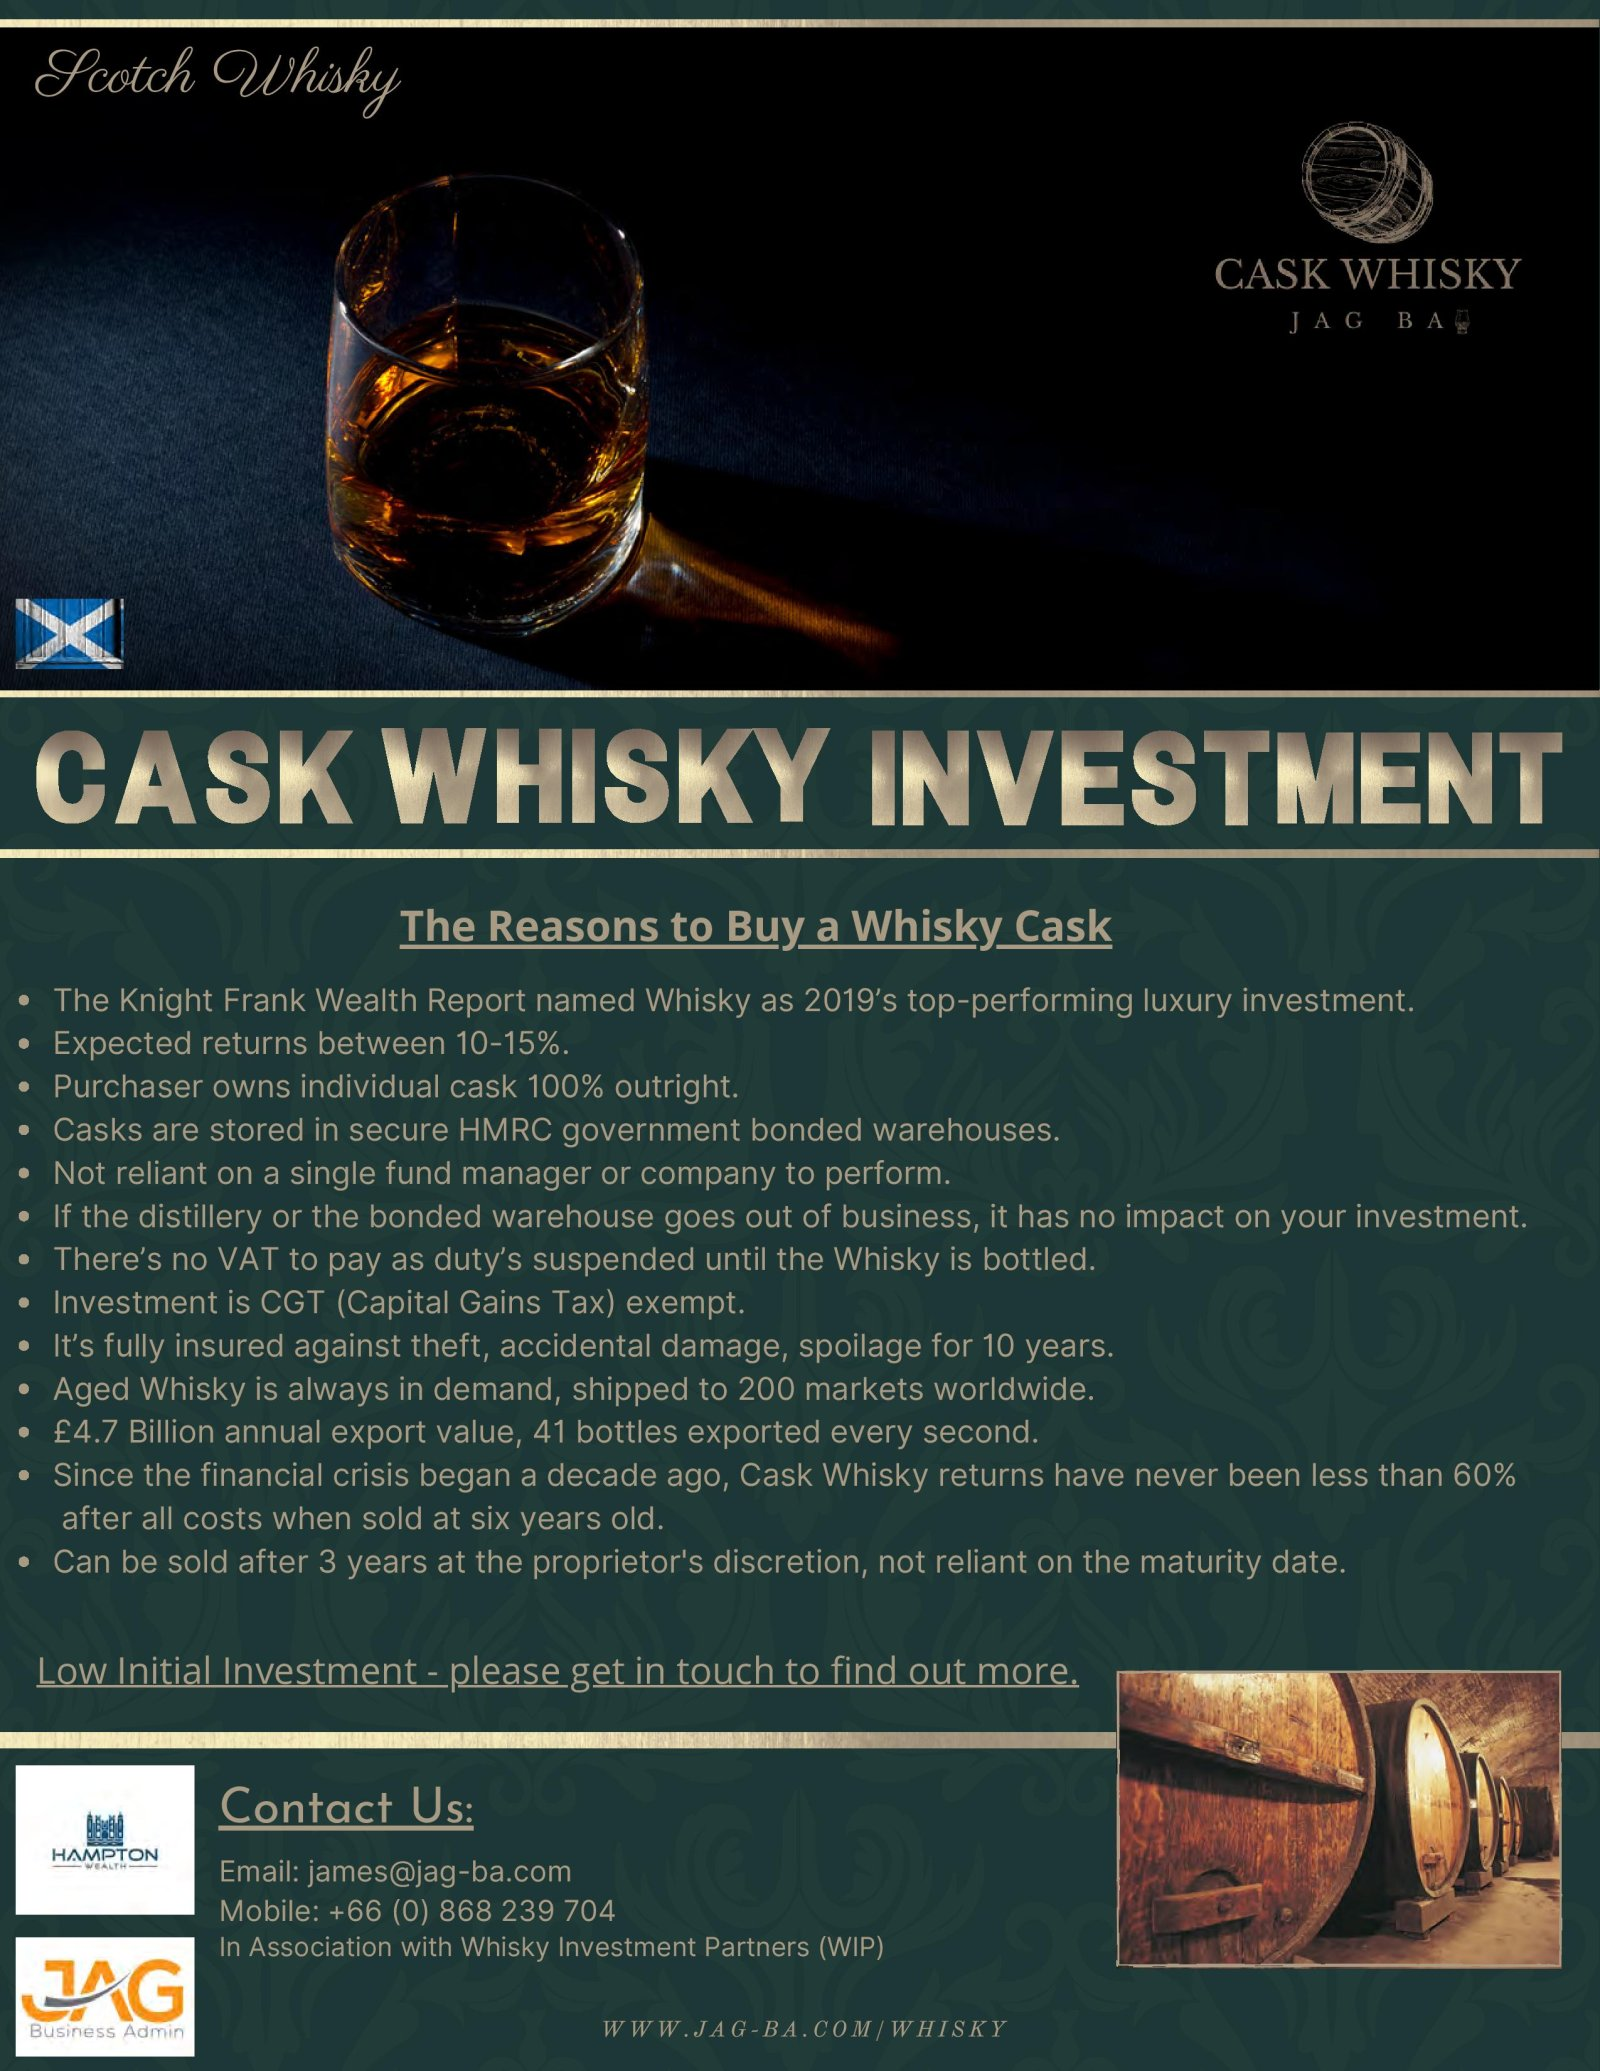 Cask Whisky Investment